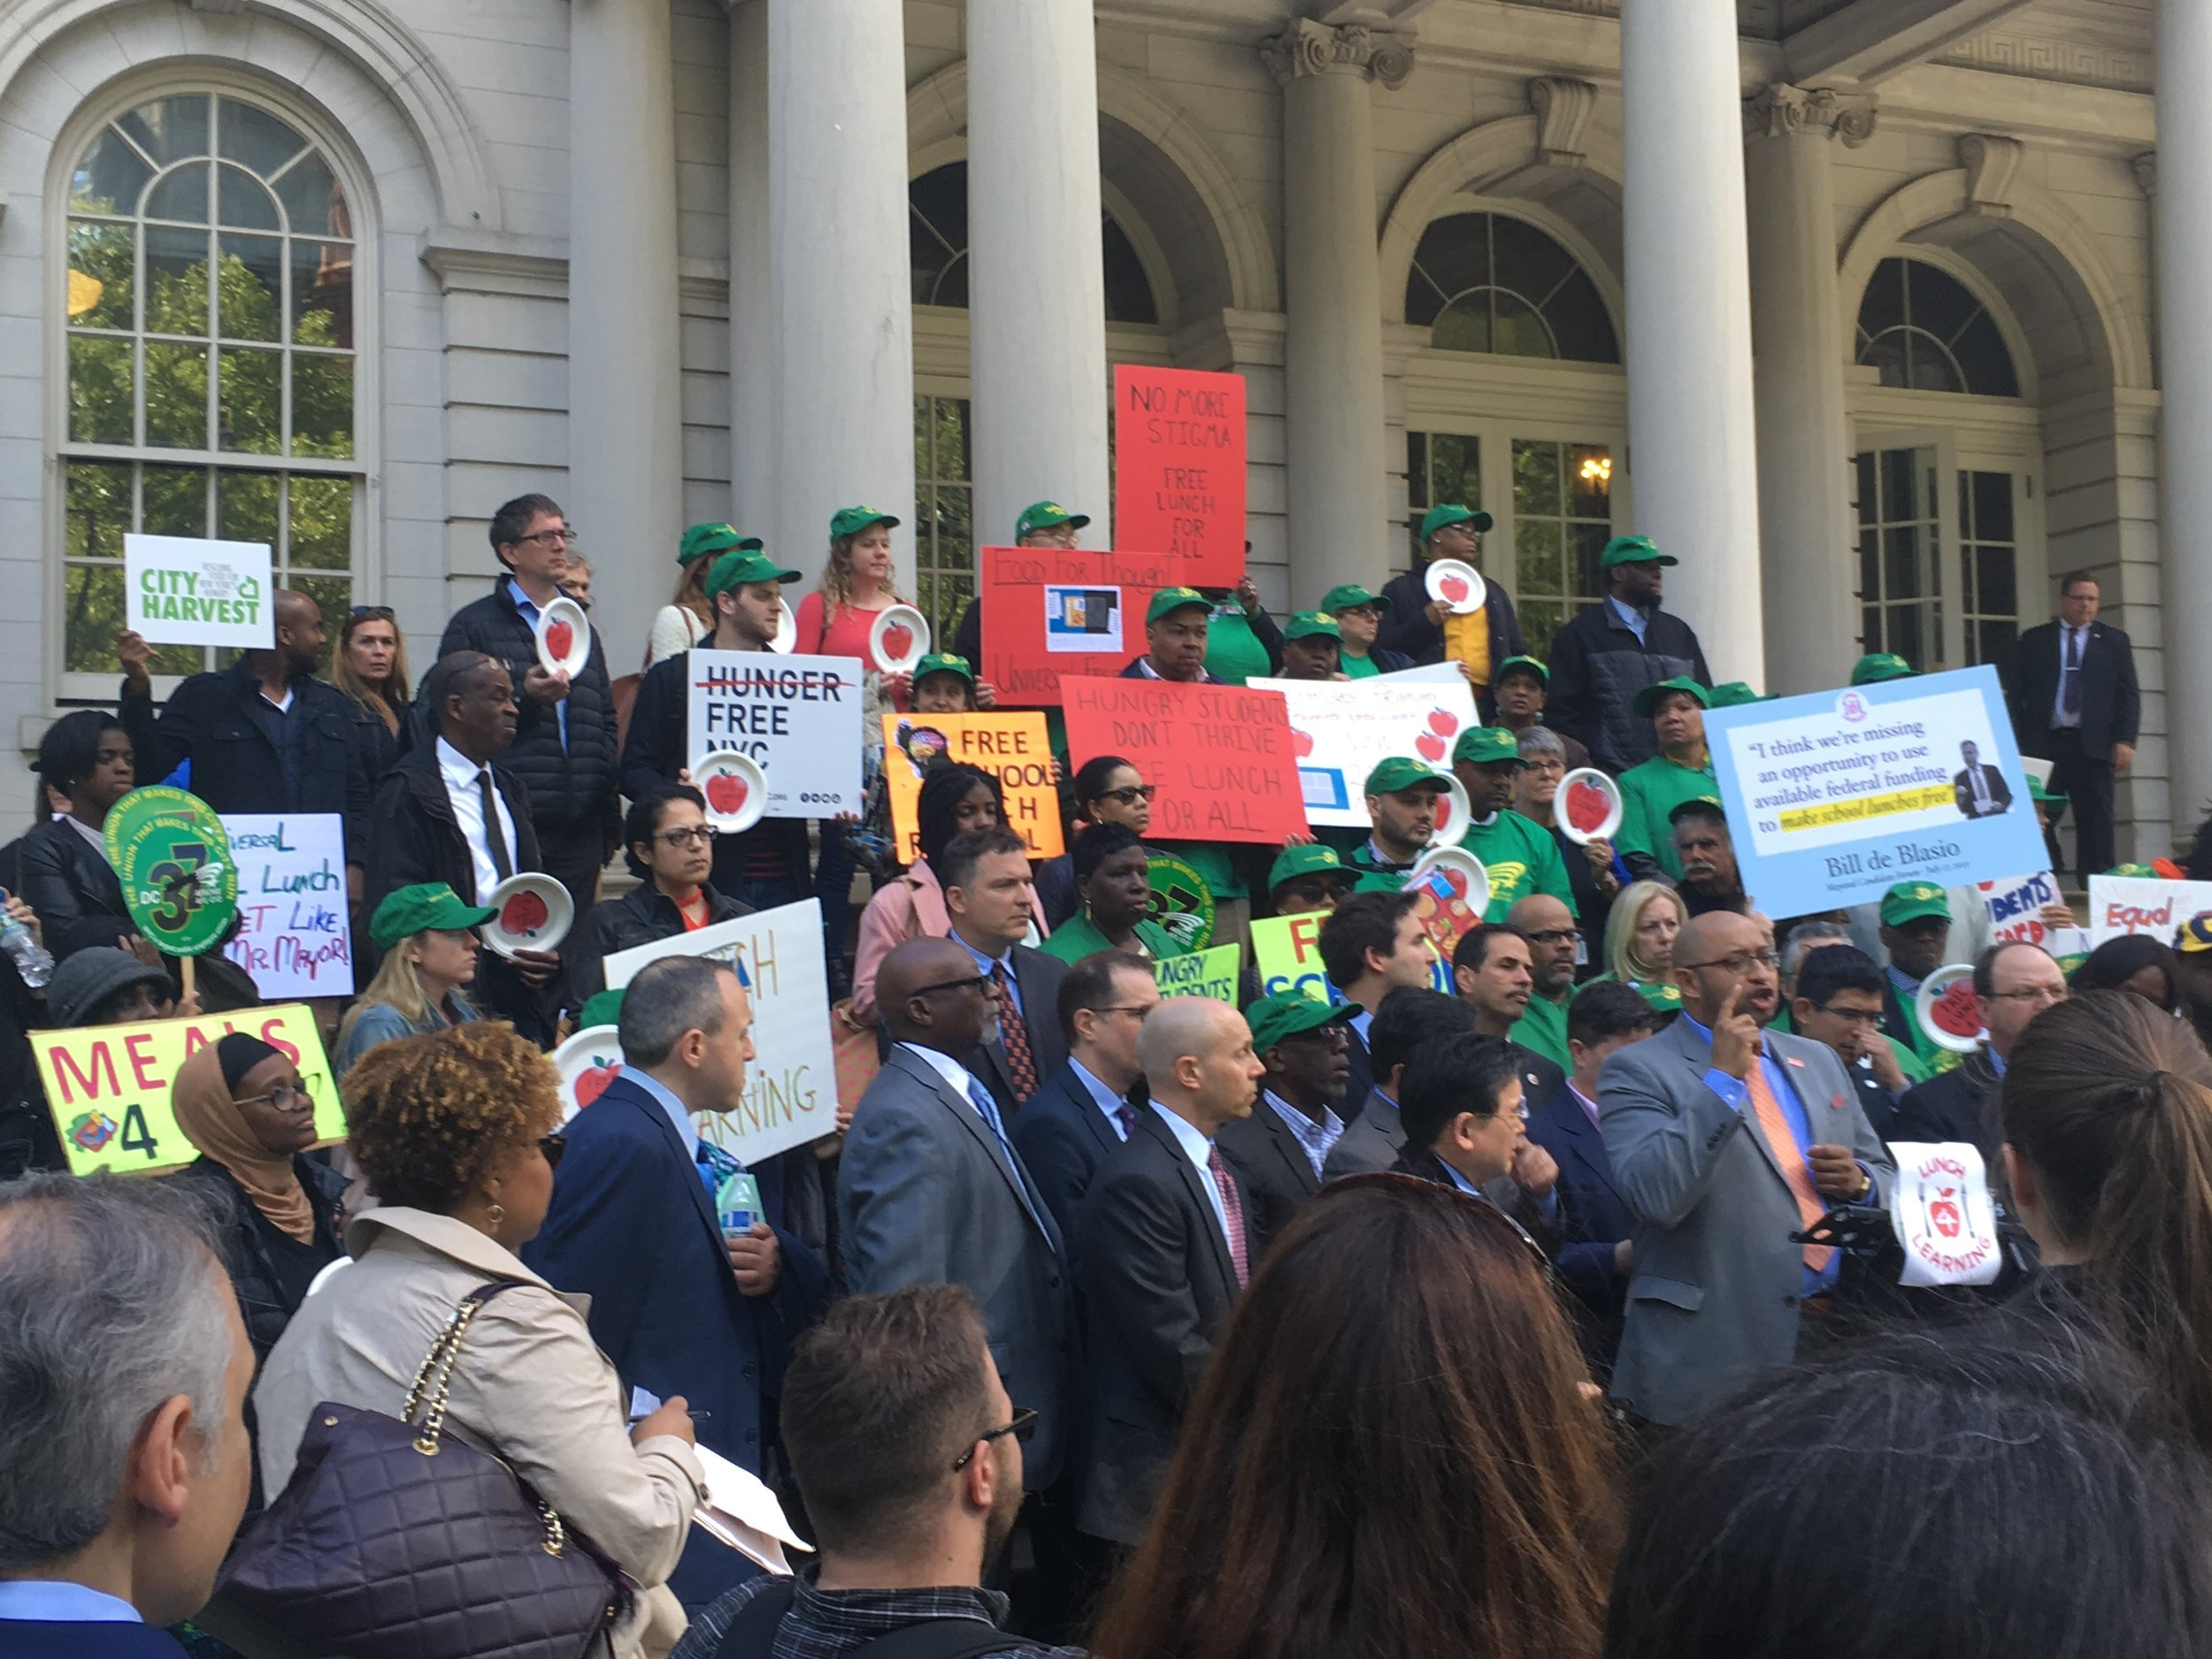 Elected officials, union leaders, parents, students and teachers held a rally at New York City Hall on May 15, 2017 in support of the Lunch for Learning Campaign.